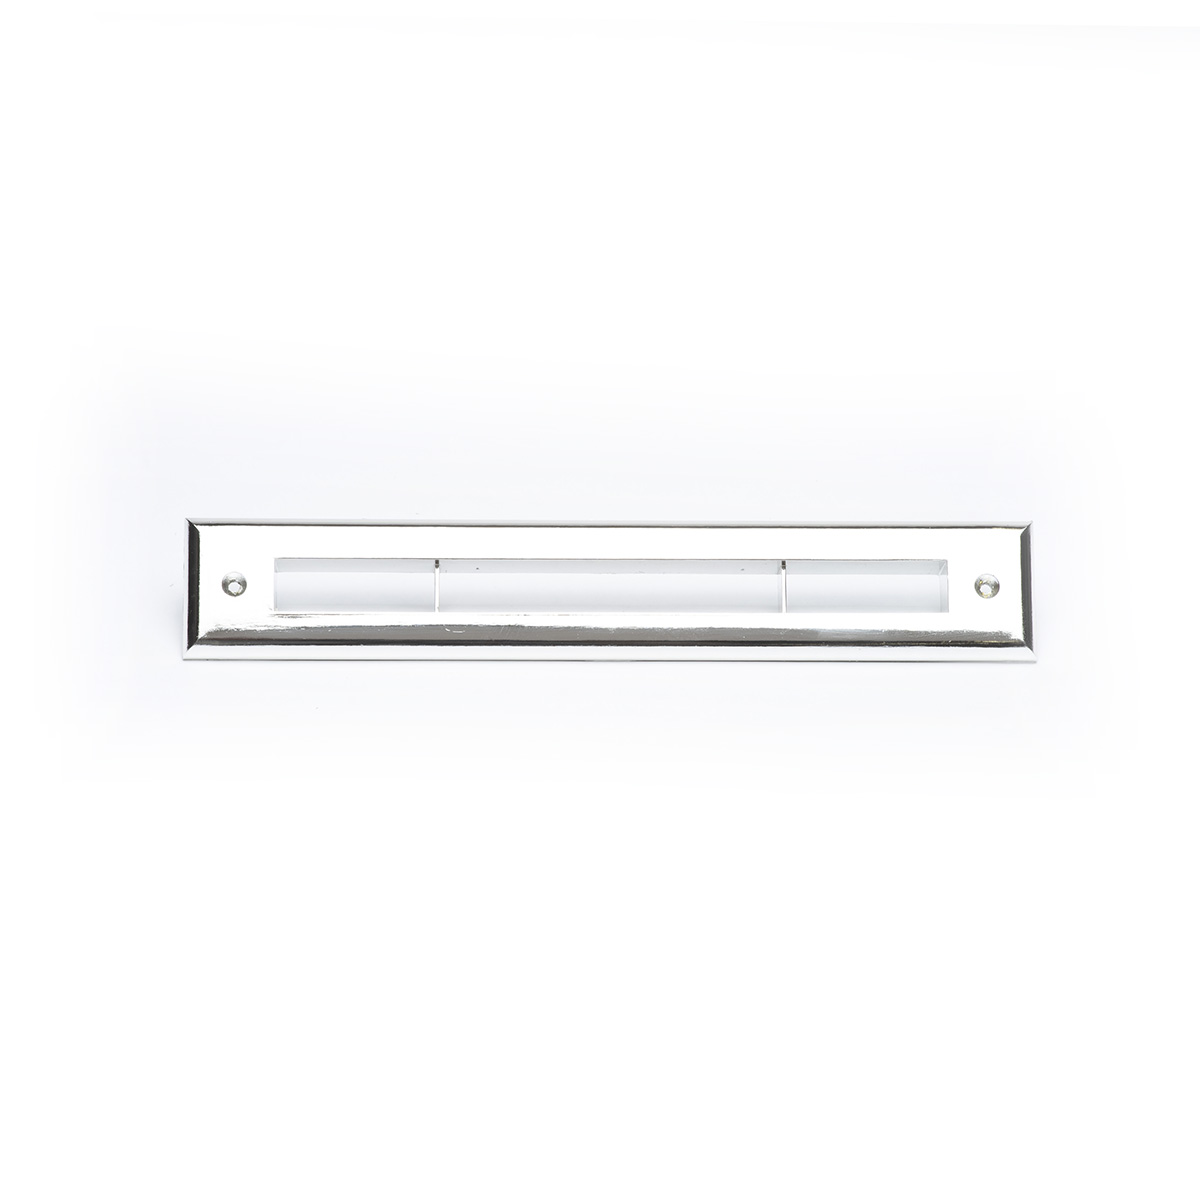 Slotted Outlet Face Plate, Chrome, UPC-66